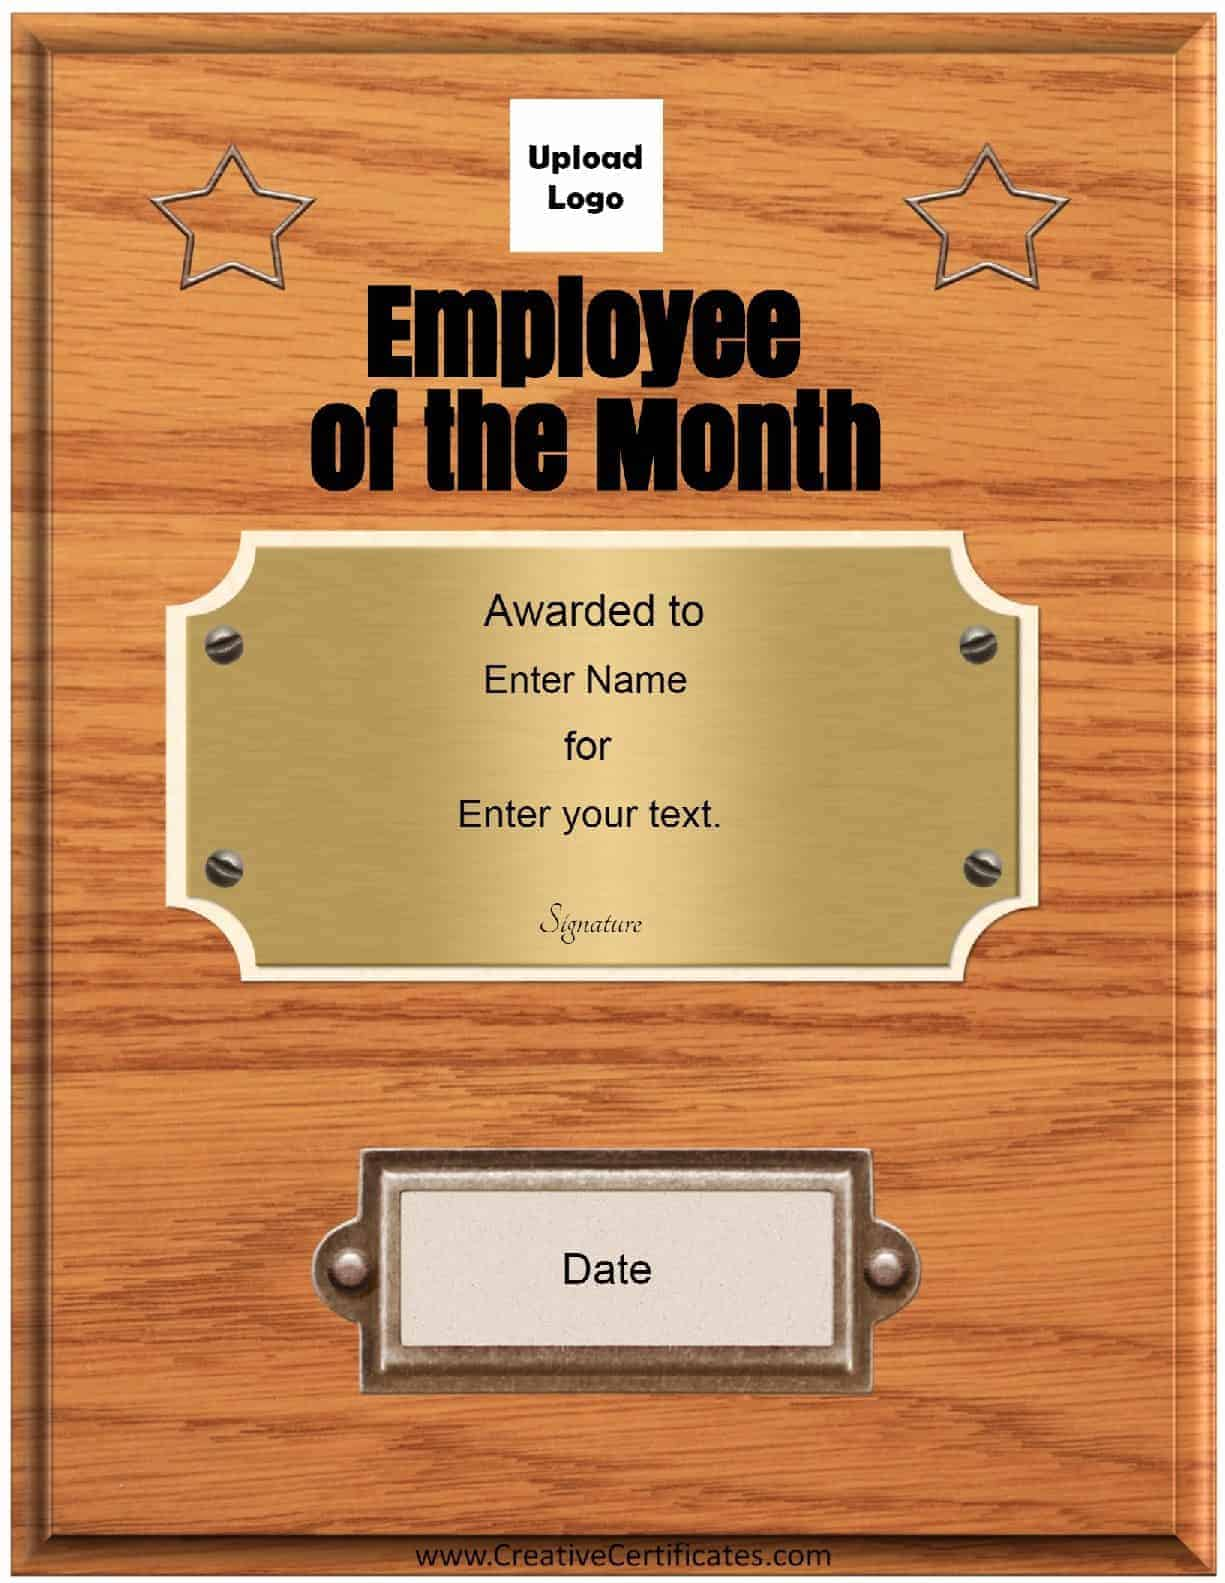 Pics Photos - Employee Of The Month Certificate Printable Certificate